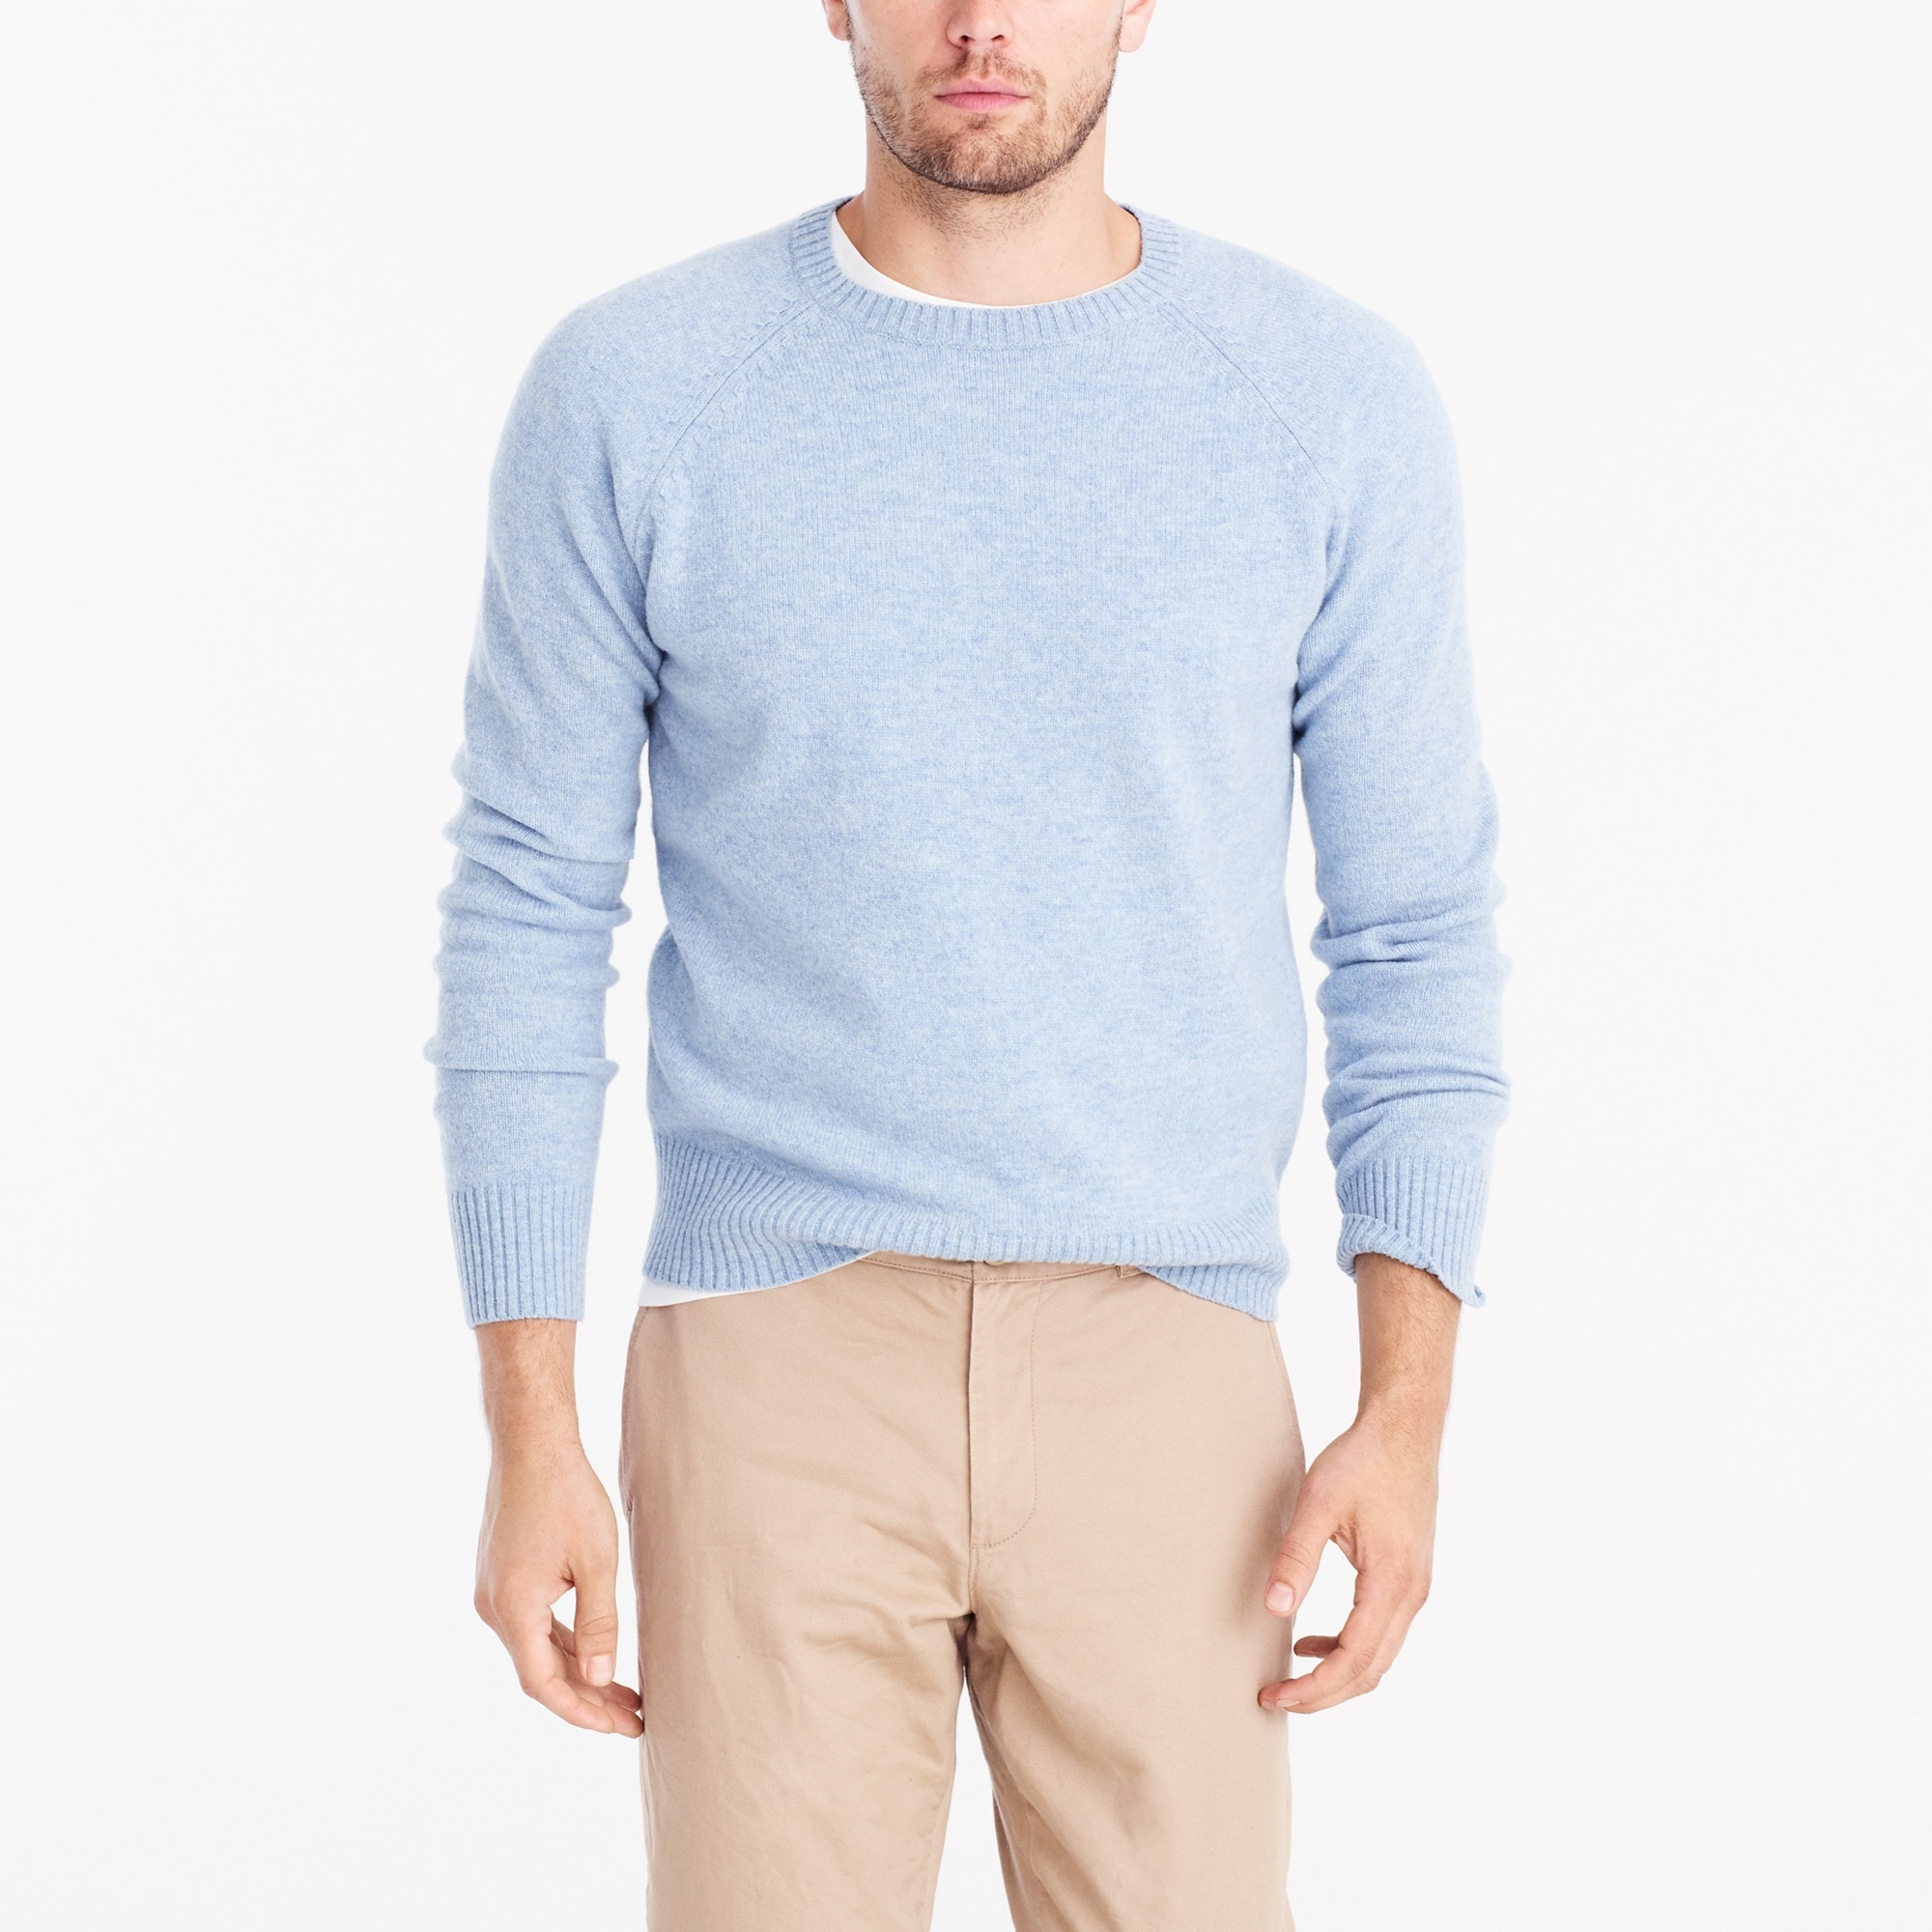 lambswool crewneck sweater : factorymen extra-nice list deals